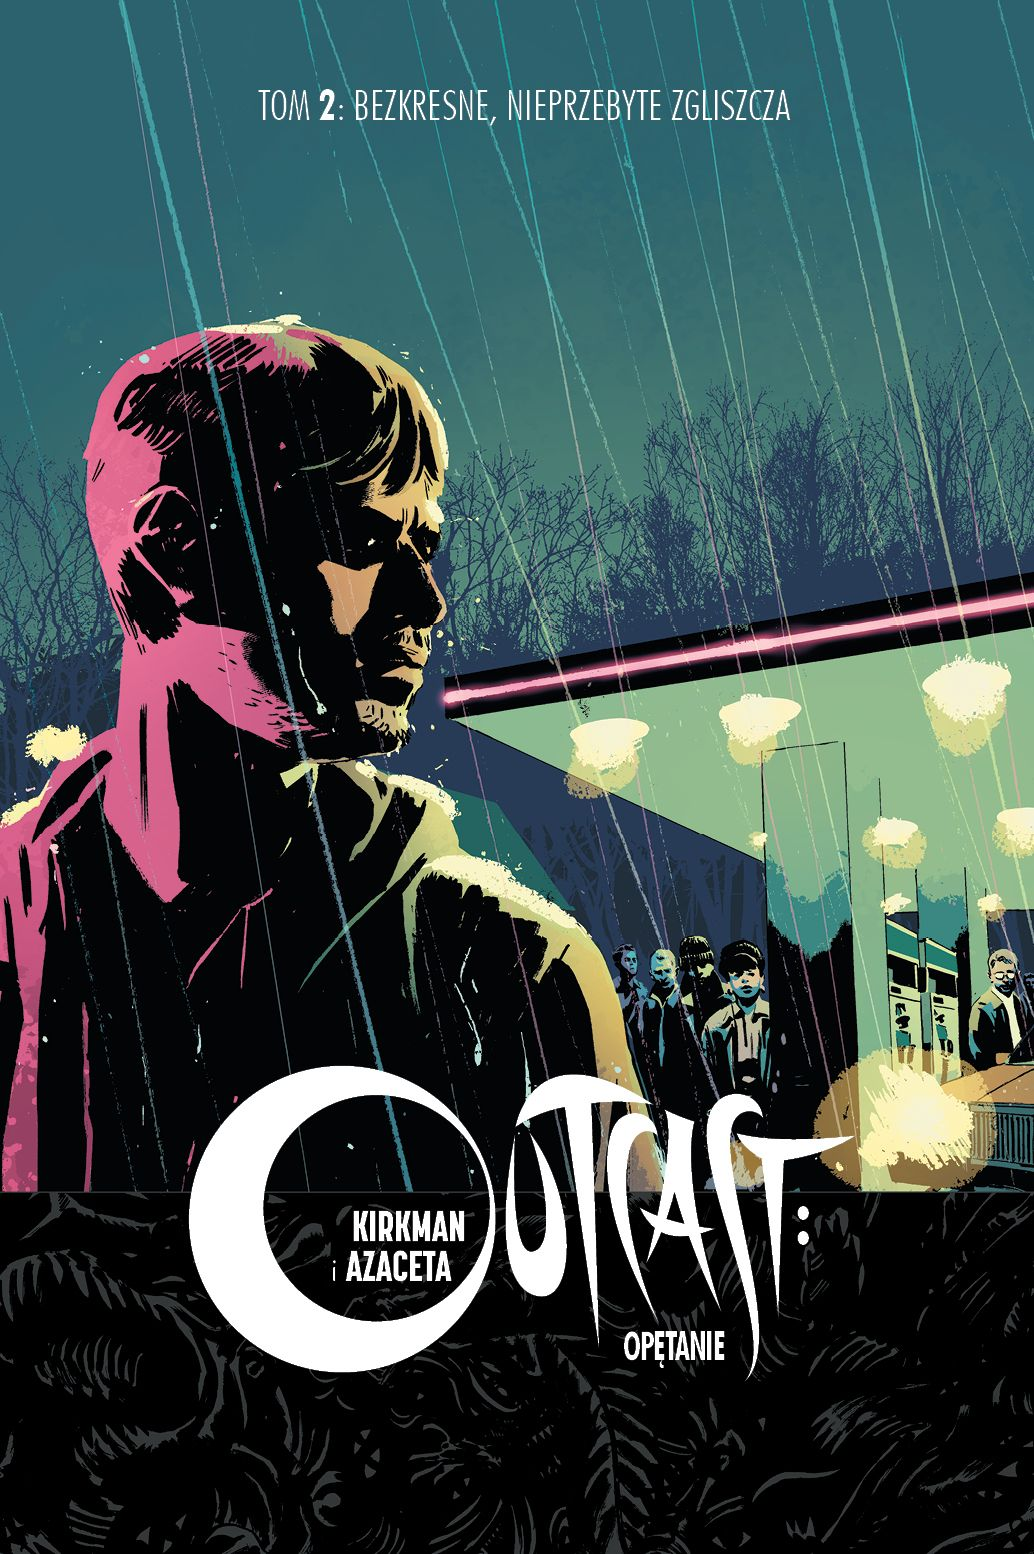 75-outcast-opetanie-tom-2-be